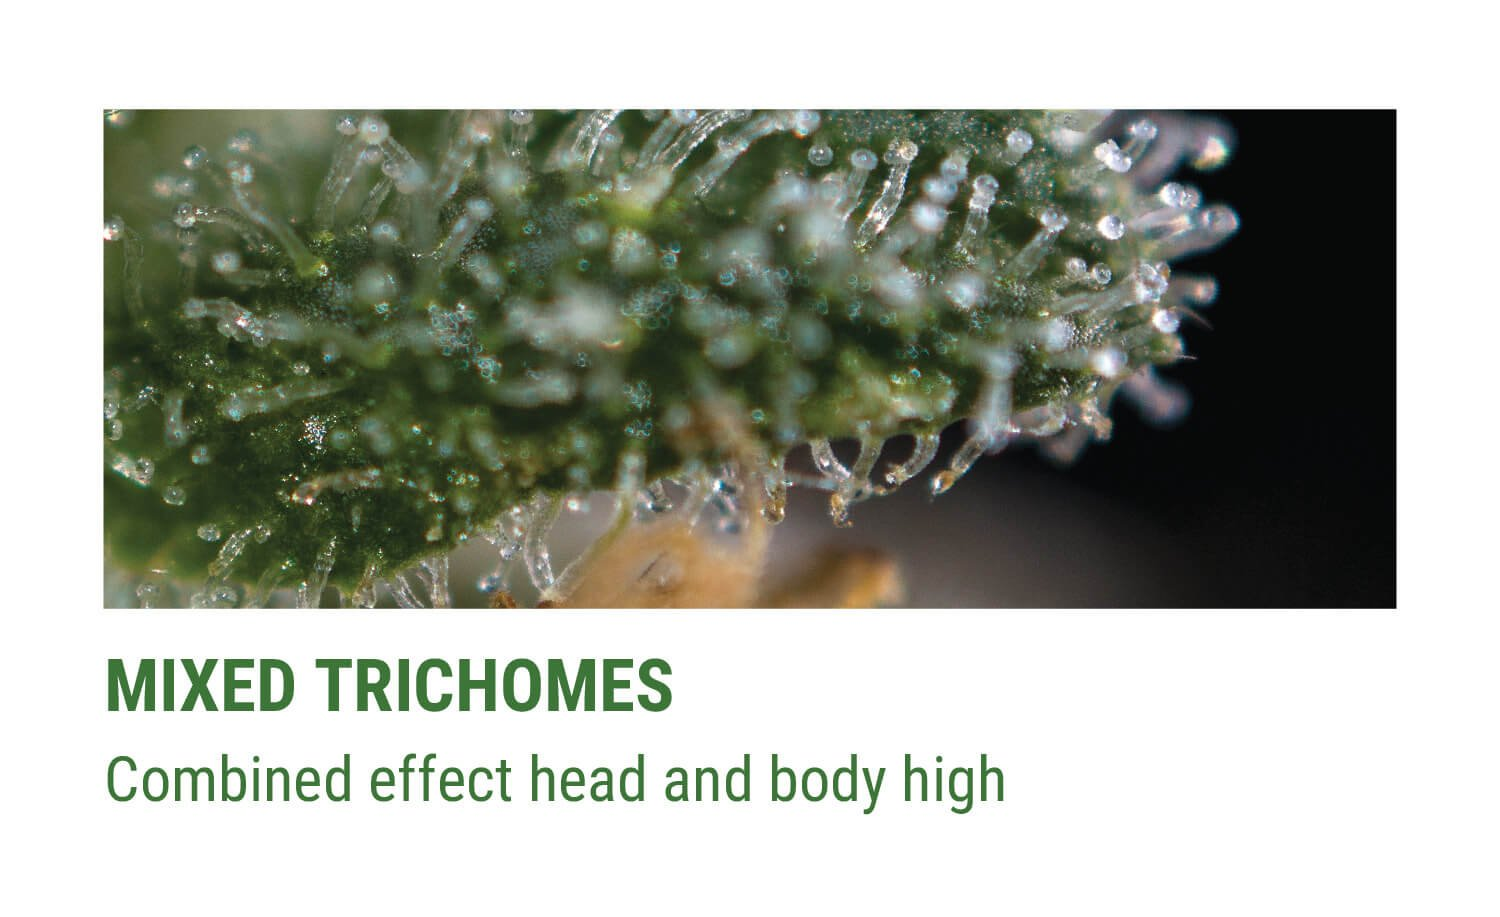 MIXED TRICHOMES